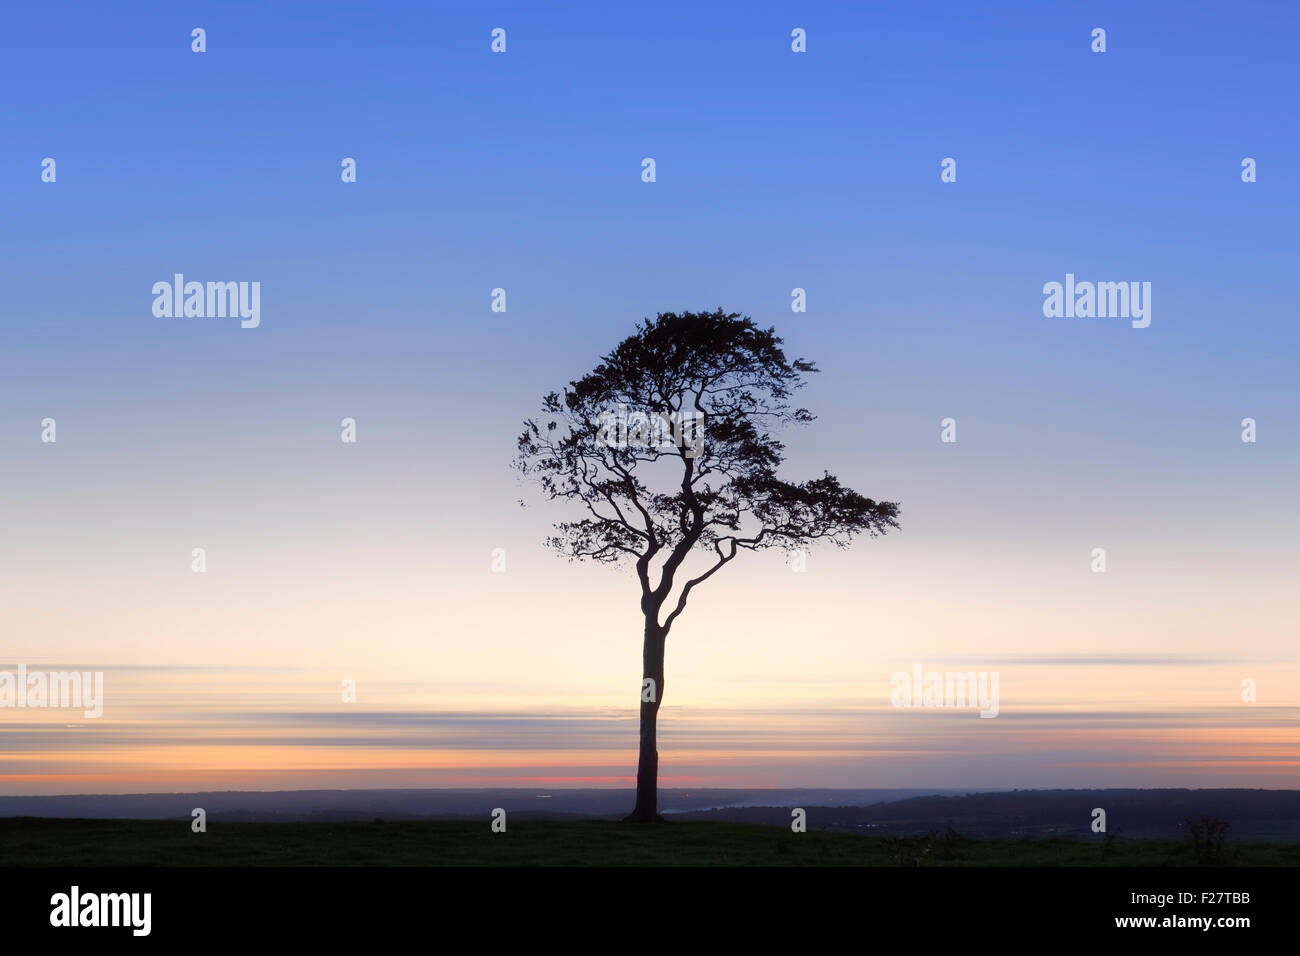 tree in sunset on Roundway Hill, Devizes, Wiltshire, England, UK - Stock Image